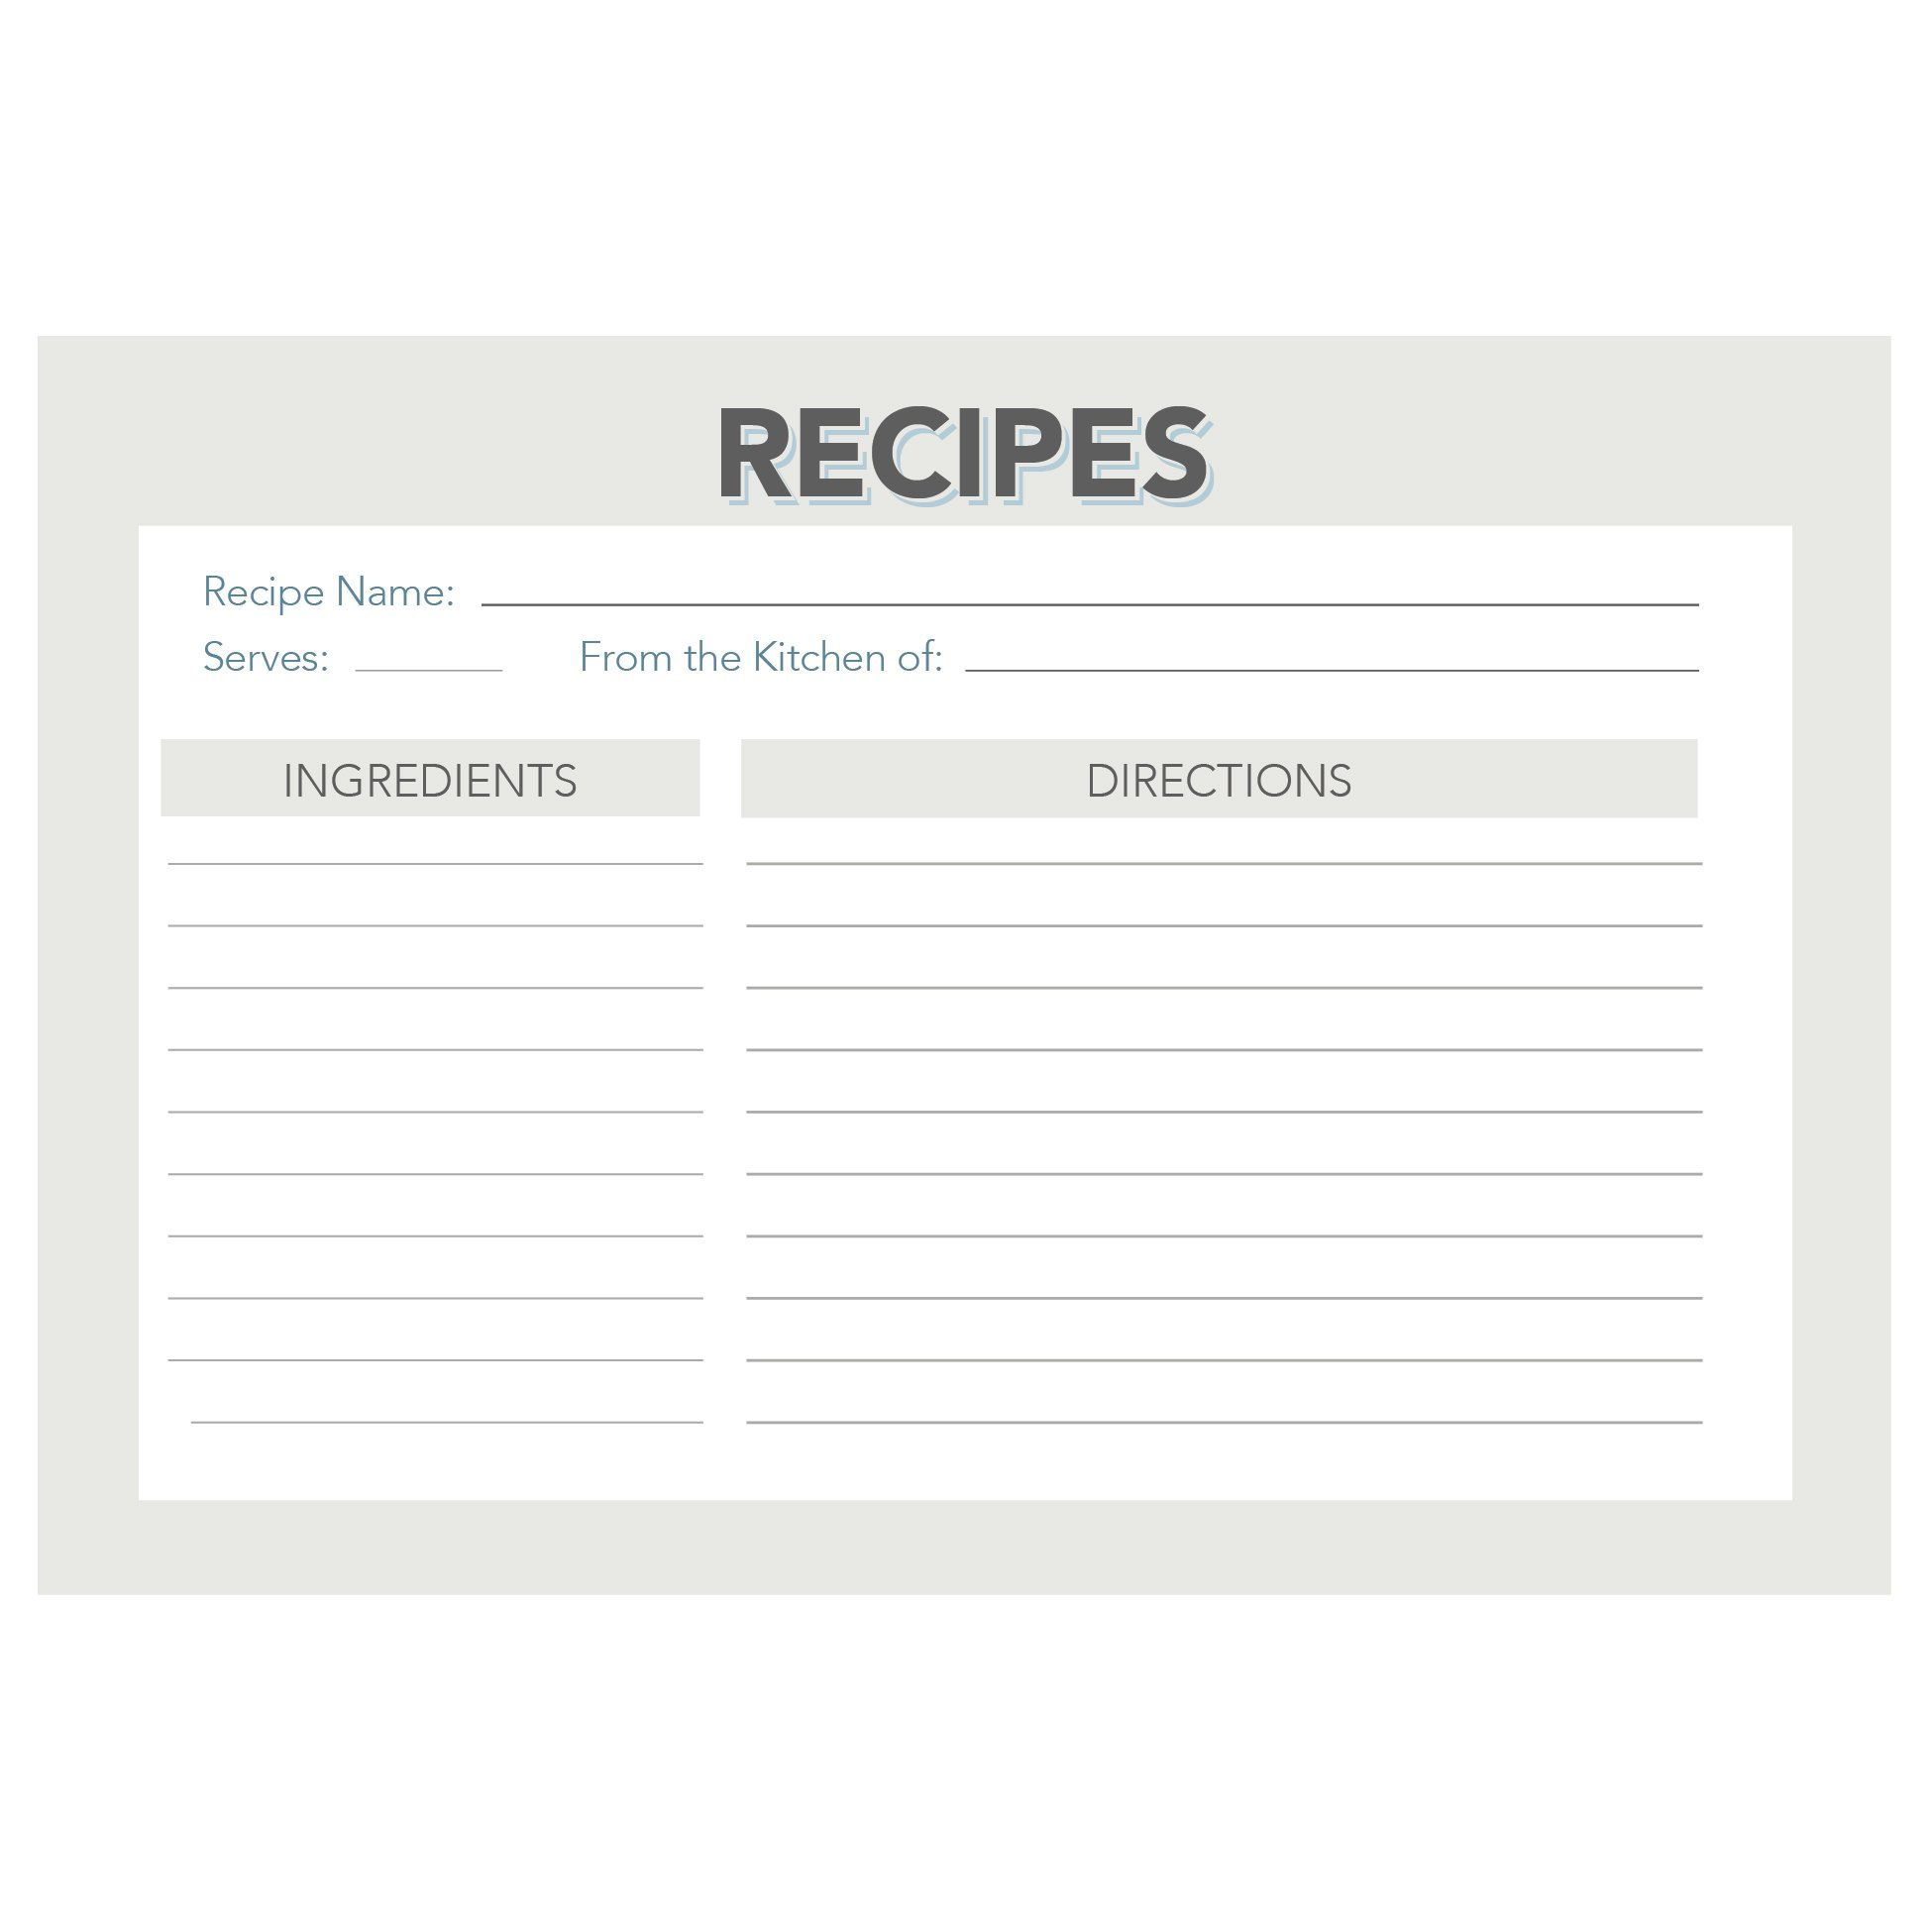 Amazon.com: Retro and Vintage Recipe Card Set from Dashleigh, 48 Cards, 4x6 inches, Water-Resistant and High Quality: Kitchen & Dining